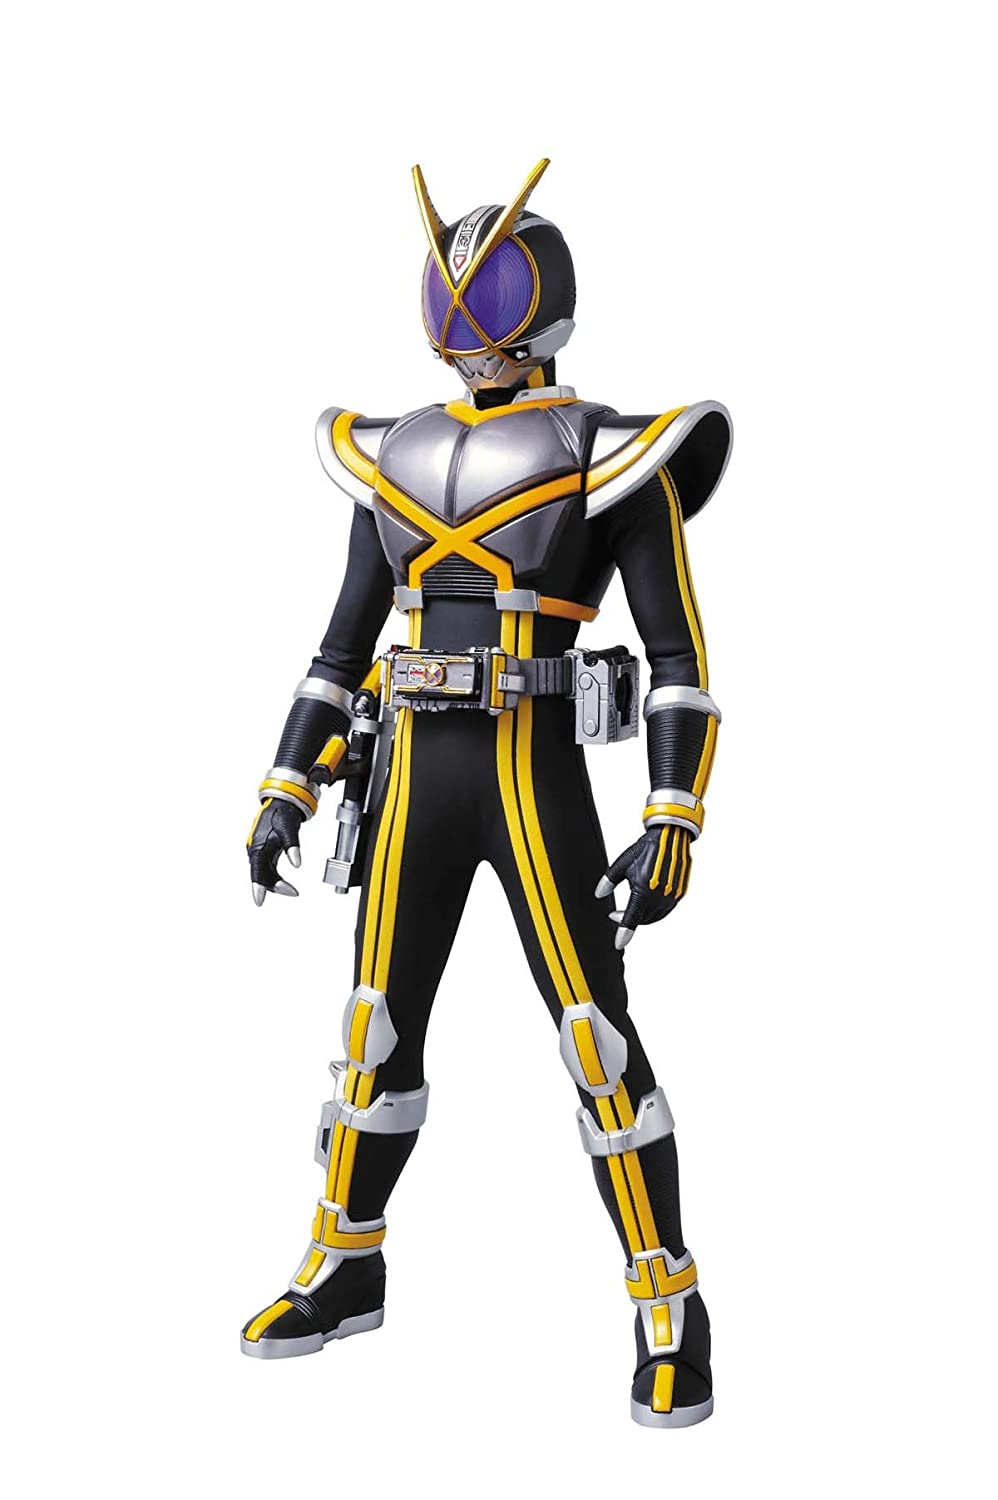 Amazon.com: RAH #509 Masked Rider Kaixa action figure: Everything Else